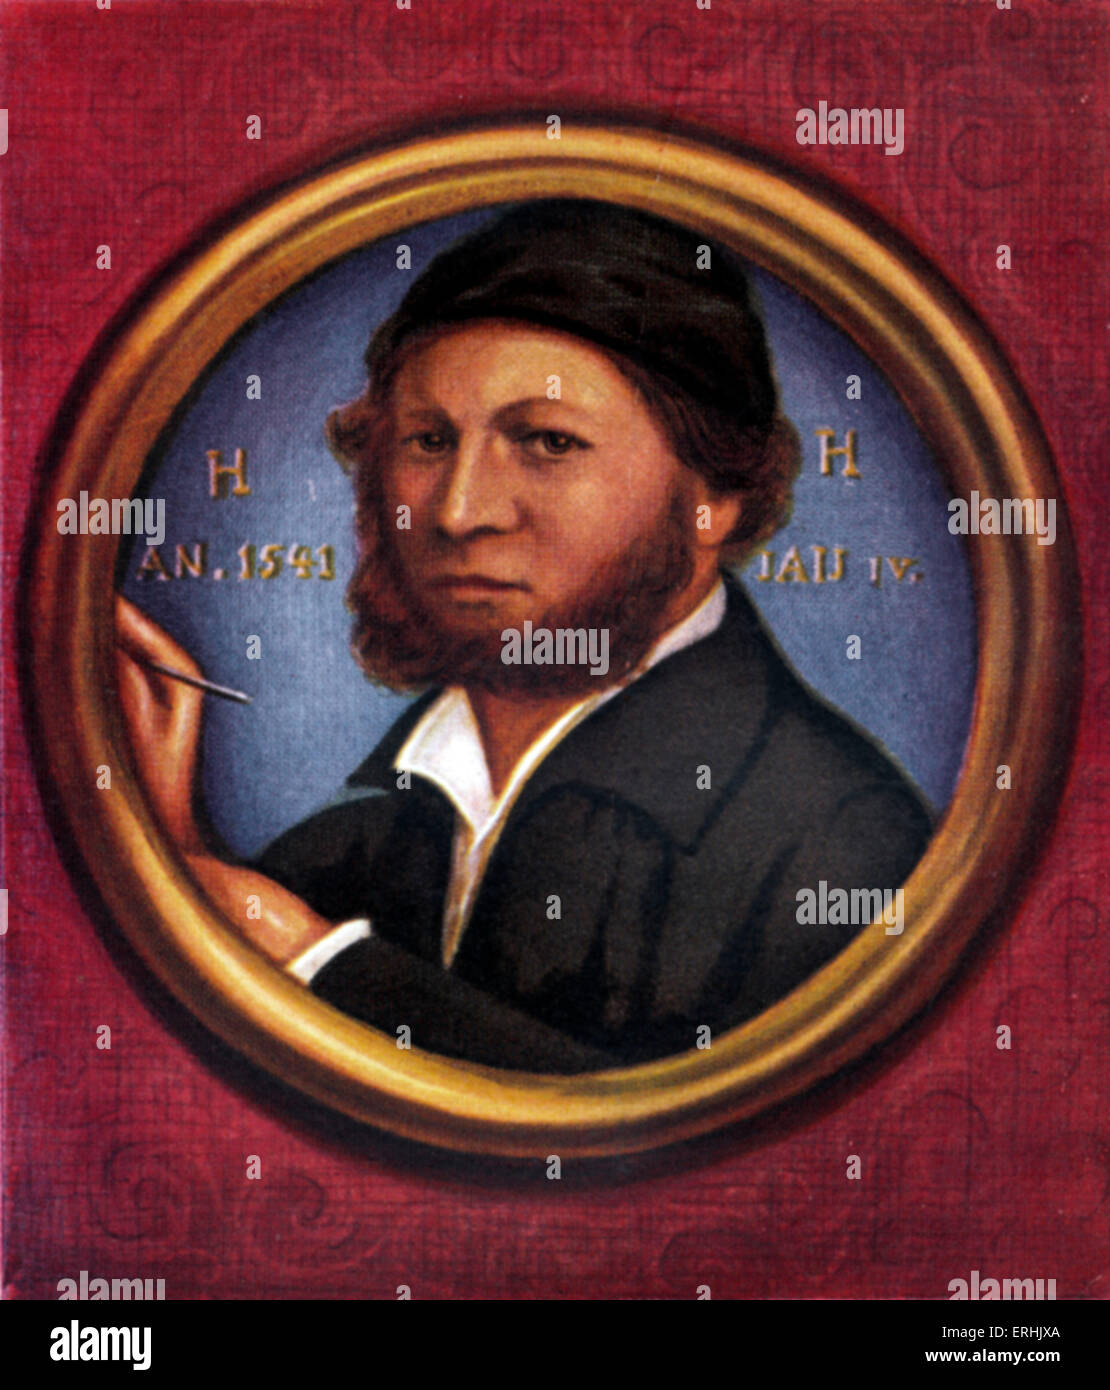 Hans Holbein the Younger. Portrait of the German artist. c. 1497–1543 - Stock Image